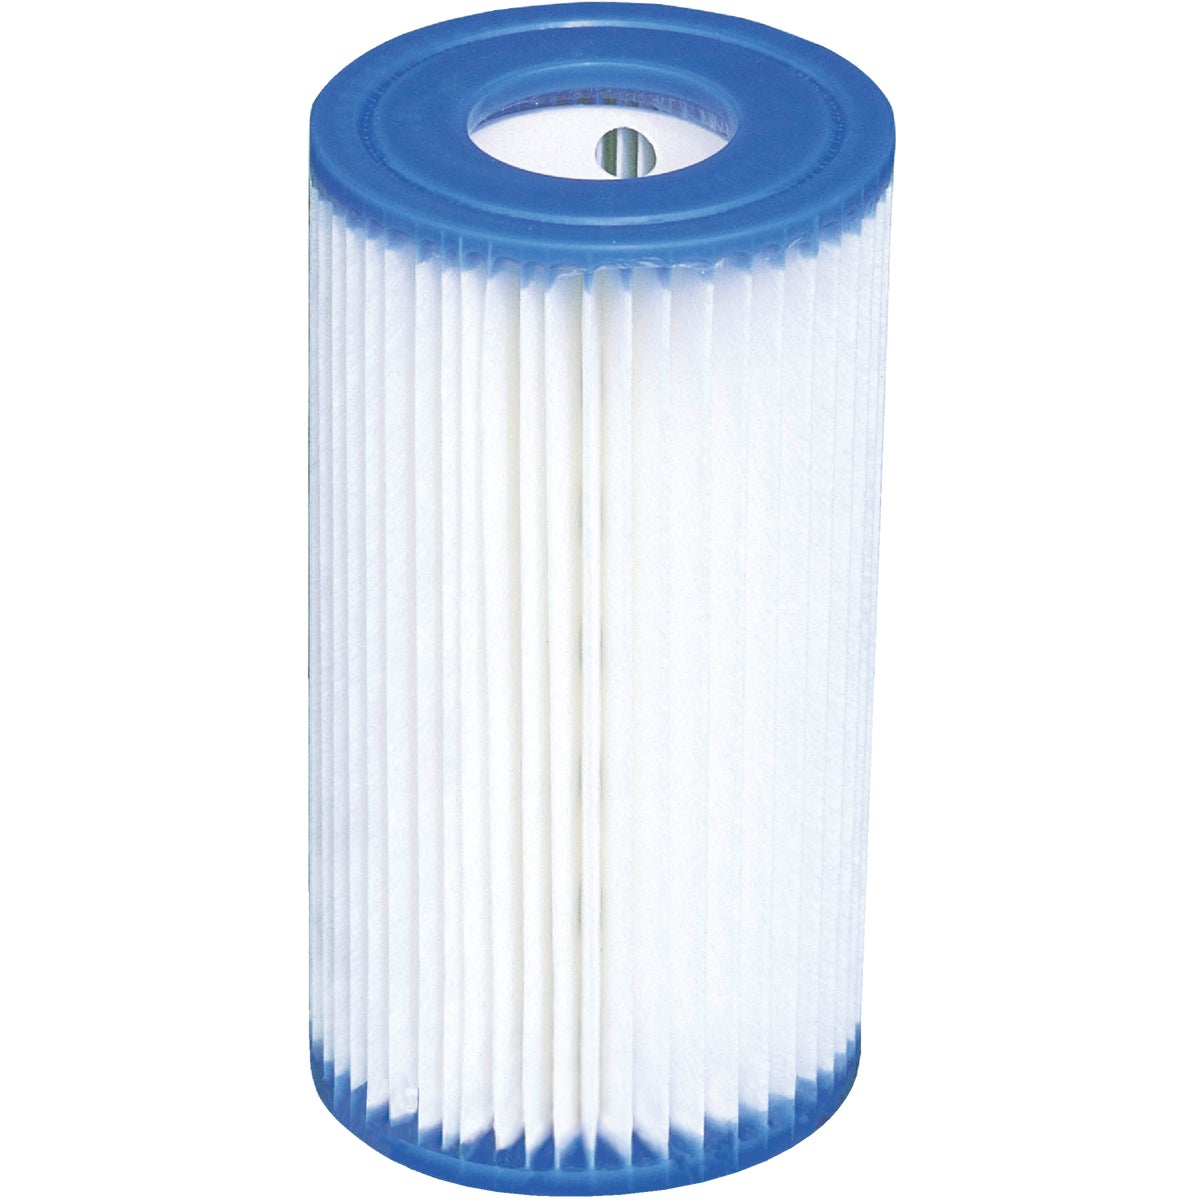 4-1/4X8 FILTER CARTRIDGE